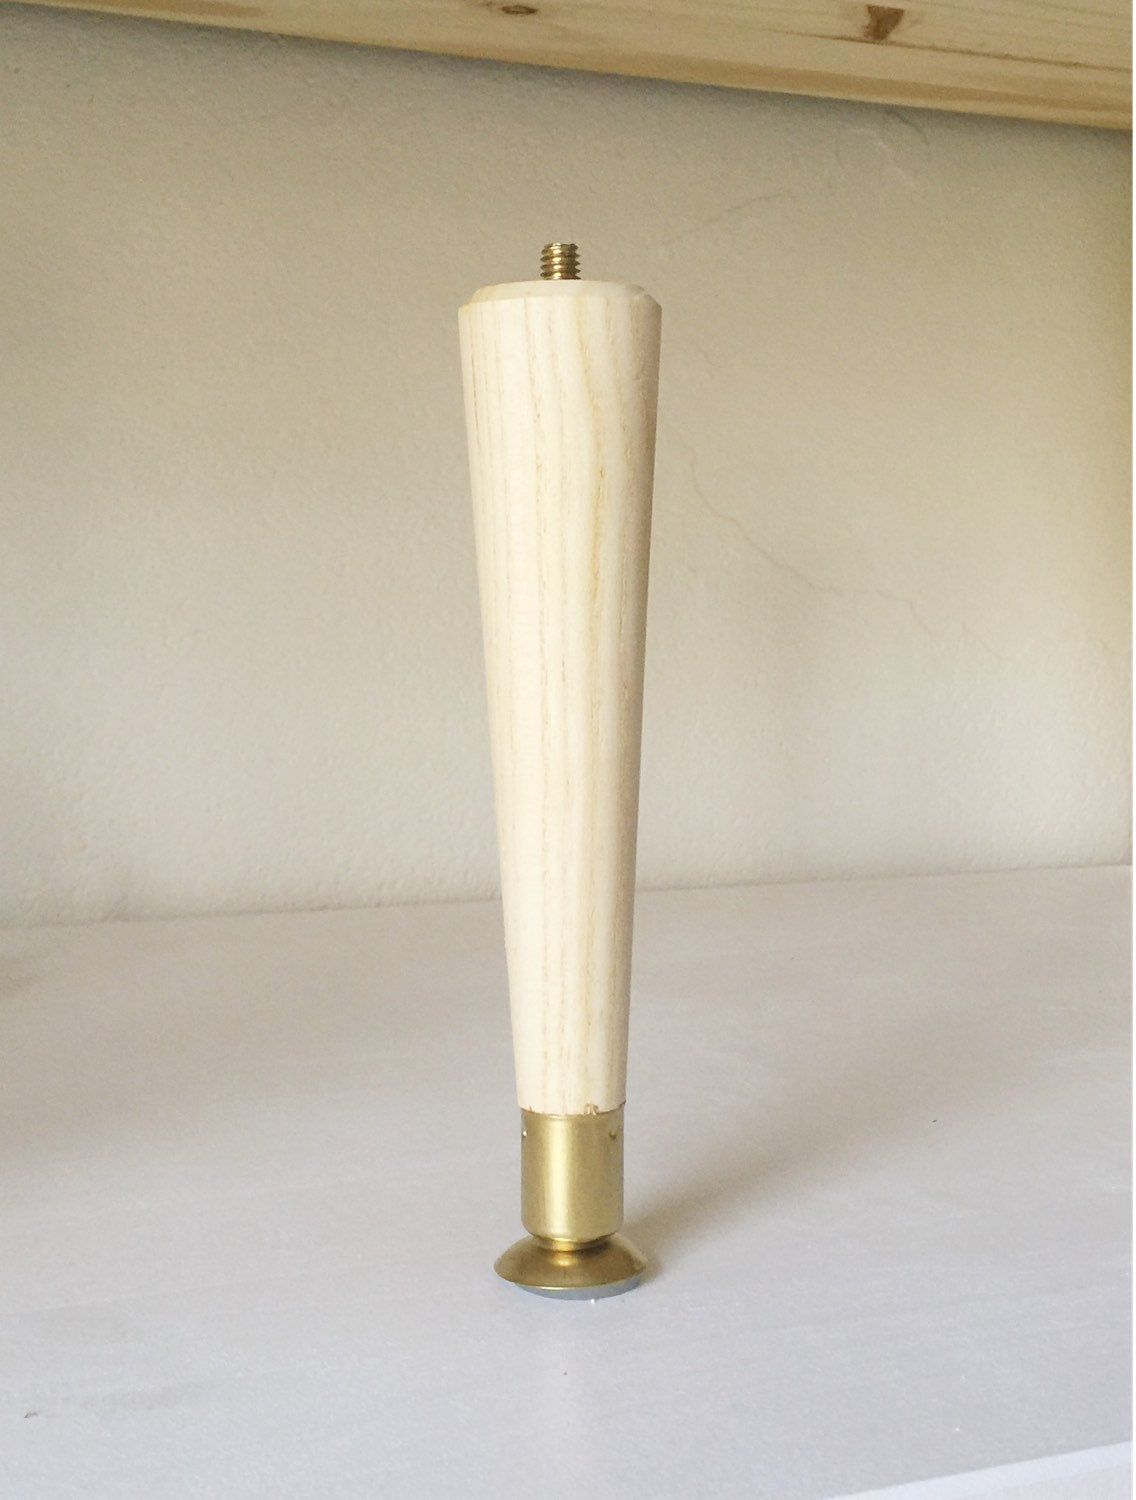 8 Mid Century Modern Brass Tapered Replacement Leg Midcentury Modern White Wood Texture Furniture Legs